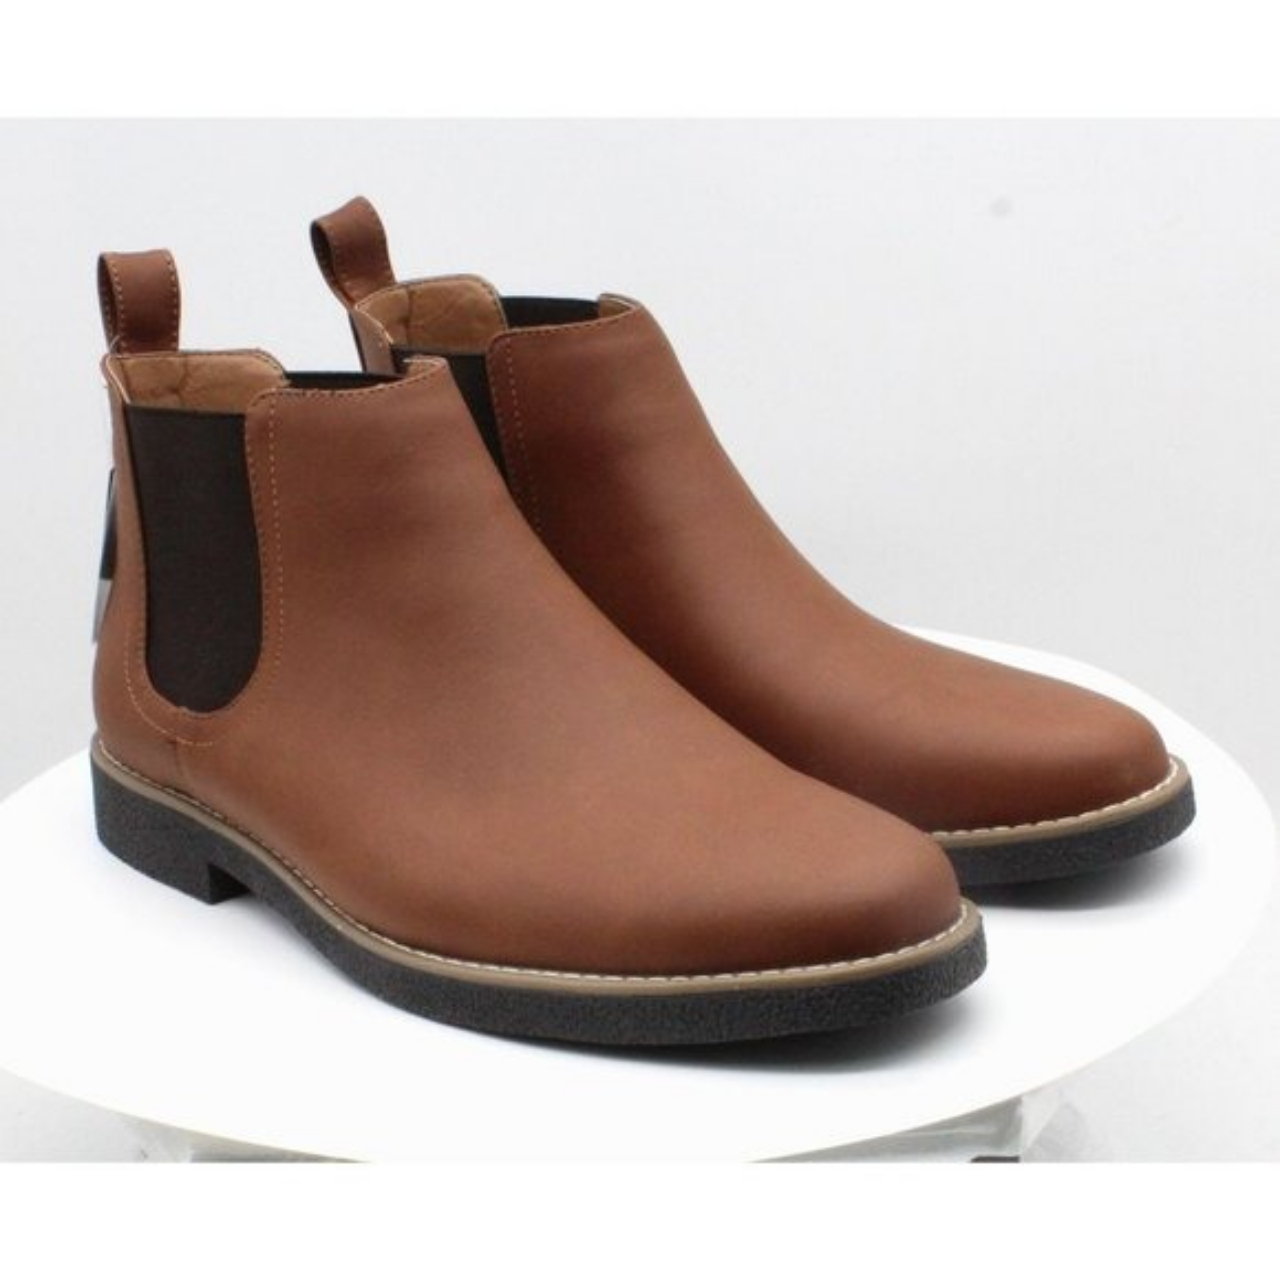 Product Image 1 - Men's Deer Stags Rockland Chelsea